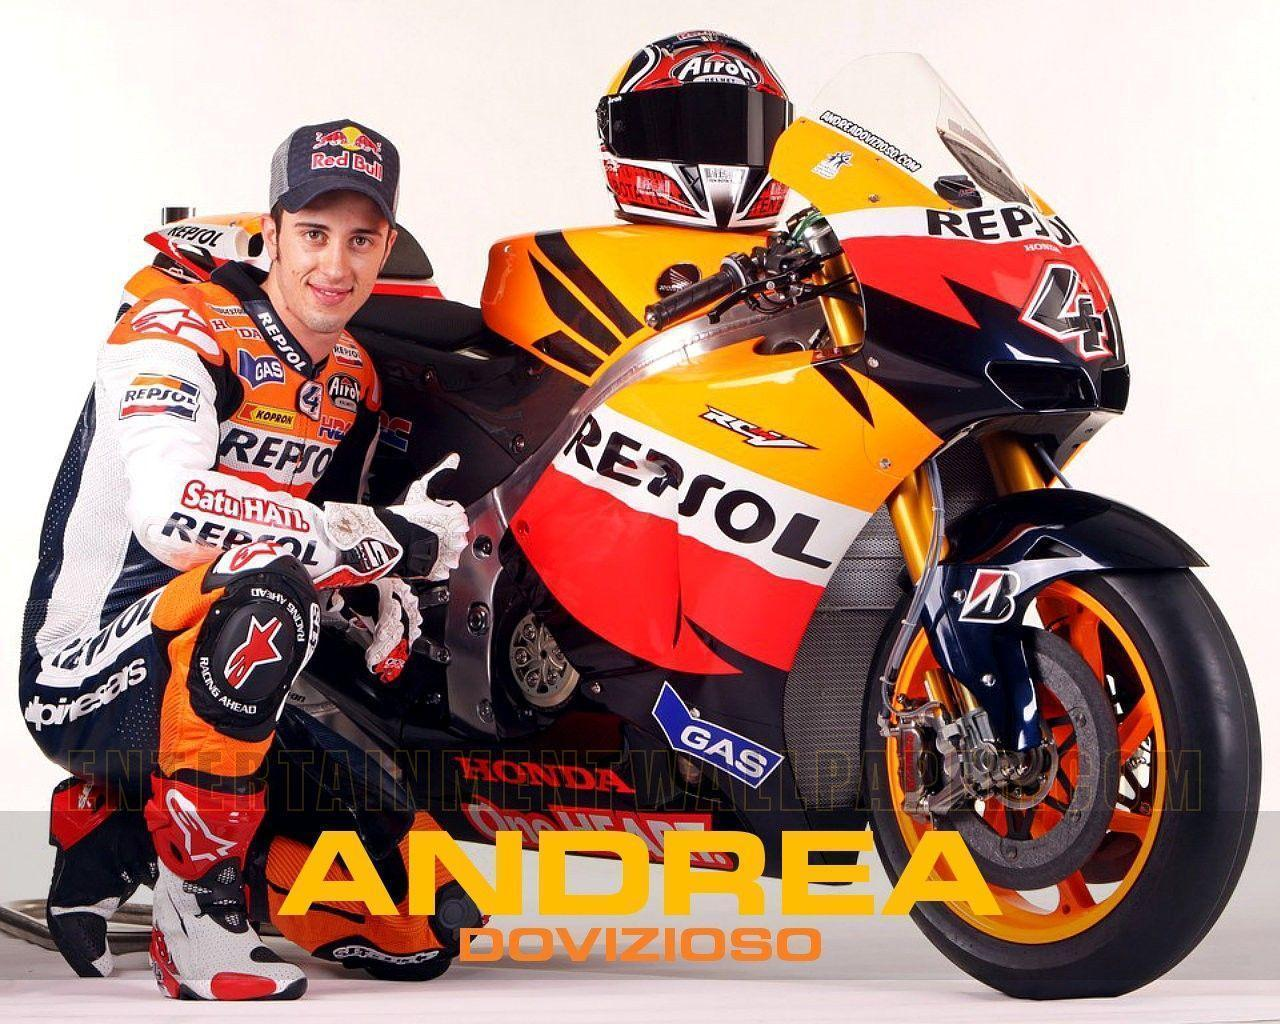 Andrea Dovizioso Wallpapers